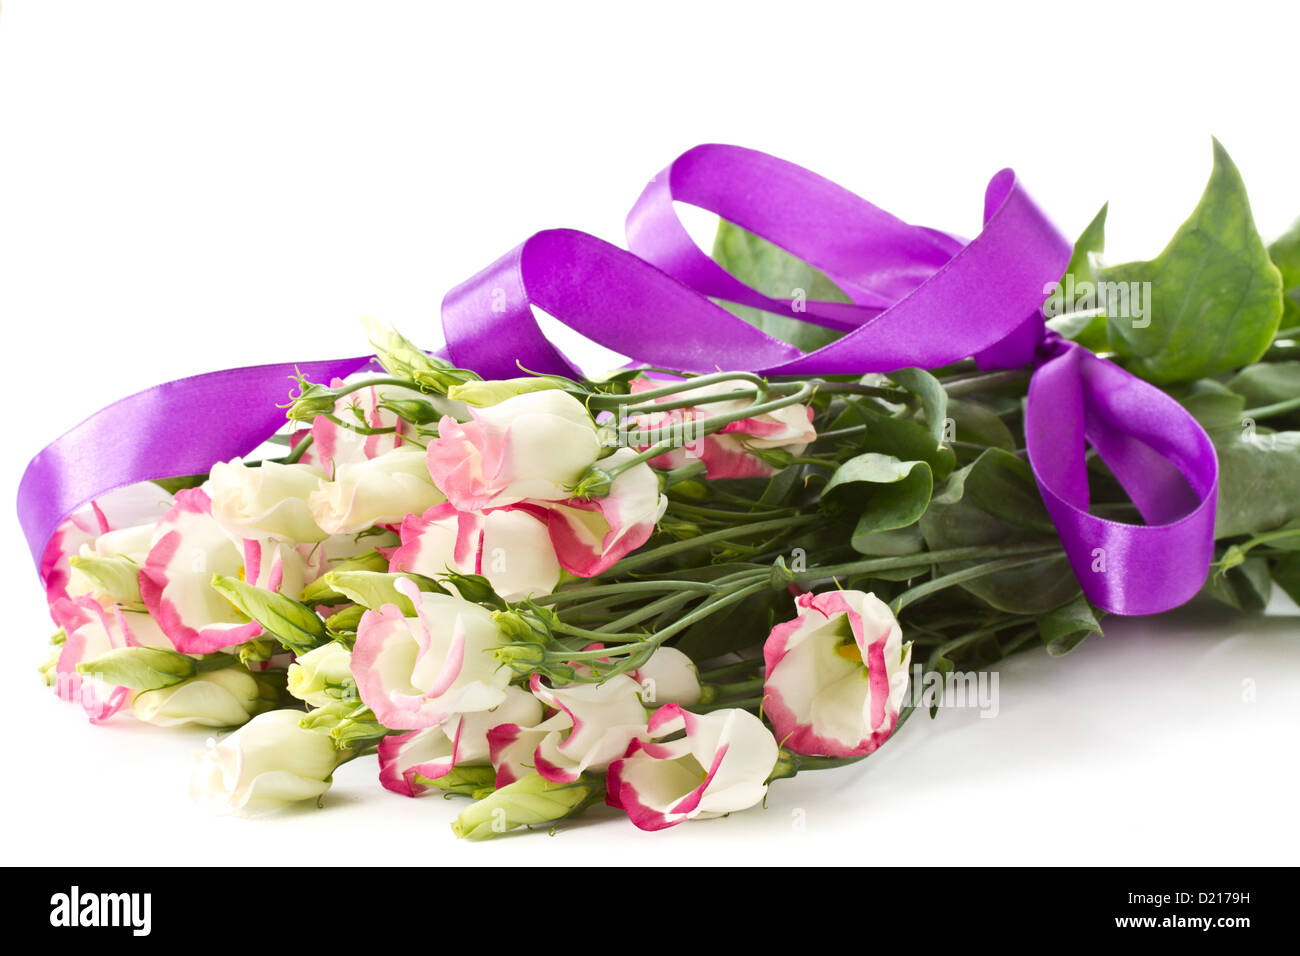 Bouquet of pink lisianthus flowers on a white background stock photo bouquet of pink lisianthus flowers on a white background mightylinksfo